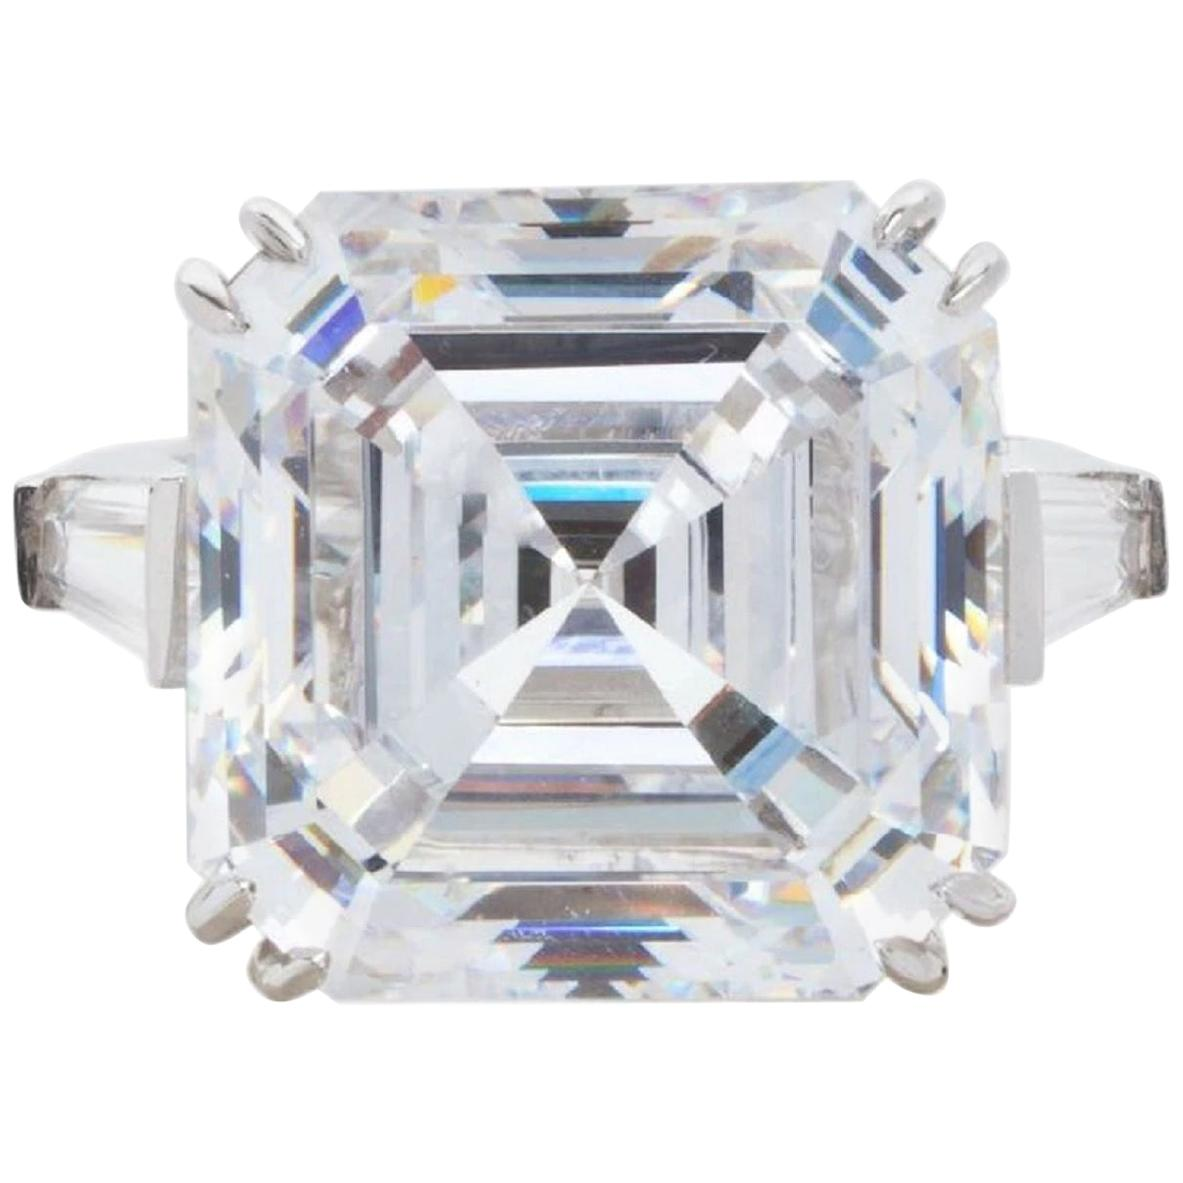 GIA Certified 8.65 Carat Square Emerald Cut Diamond Ring H Color VVS2 Clarity